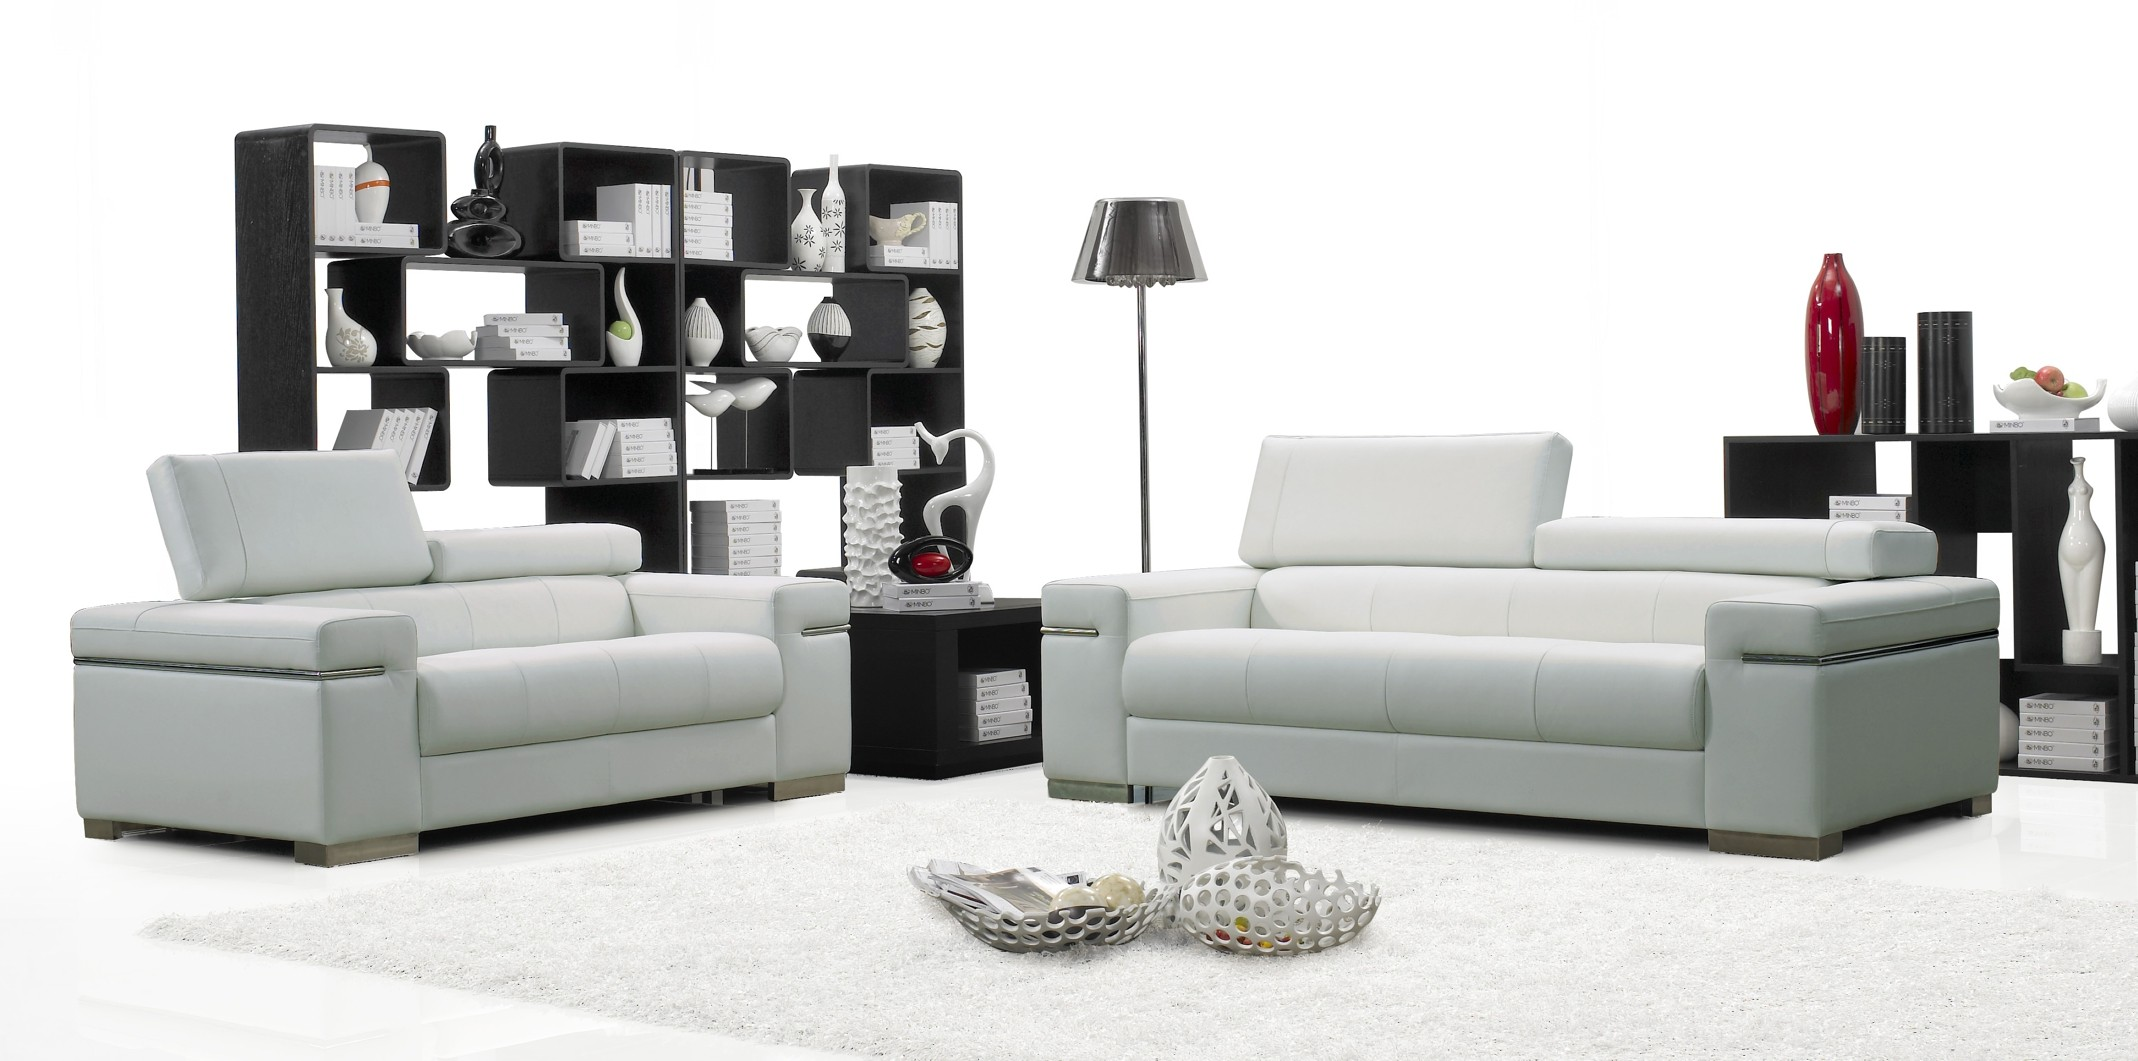 True modern furniture online homesfeed for The modern furniture